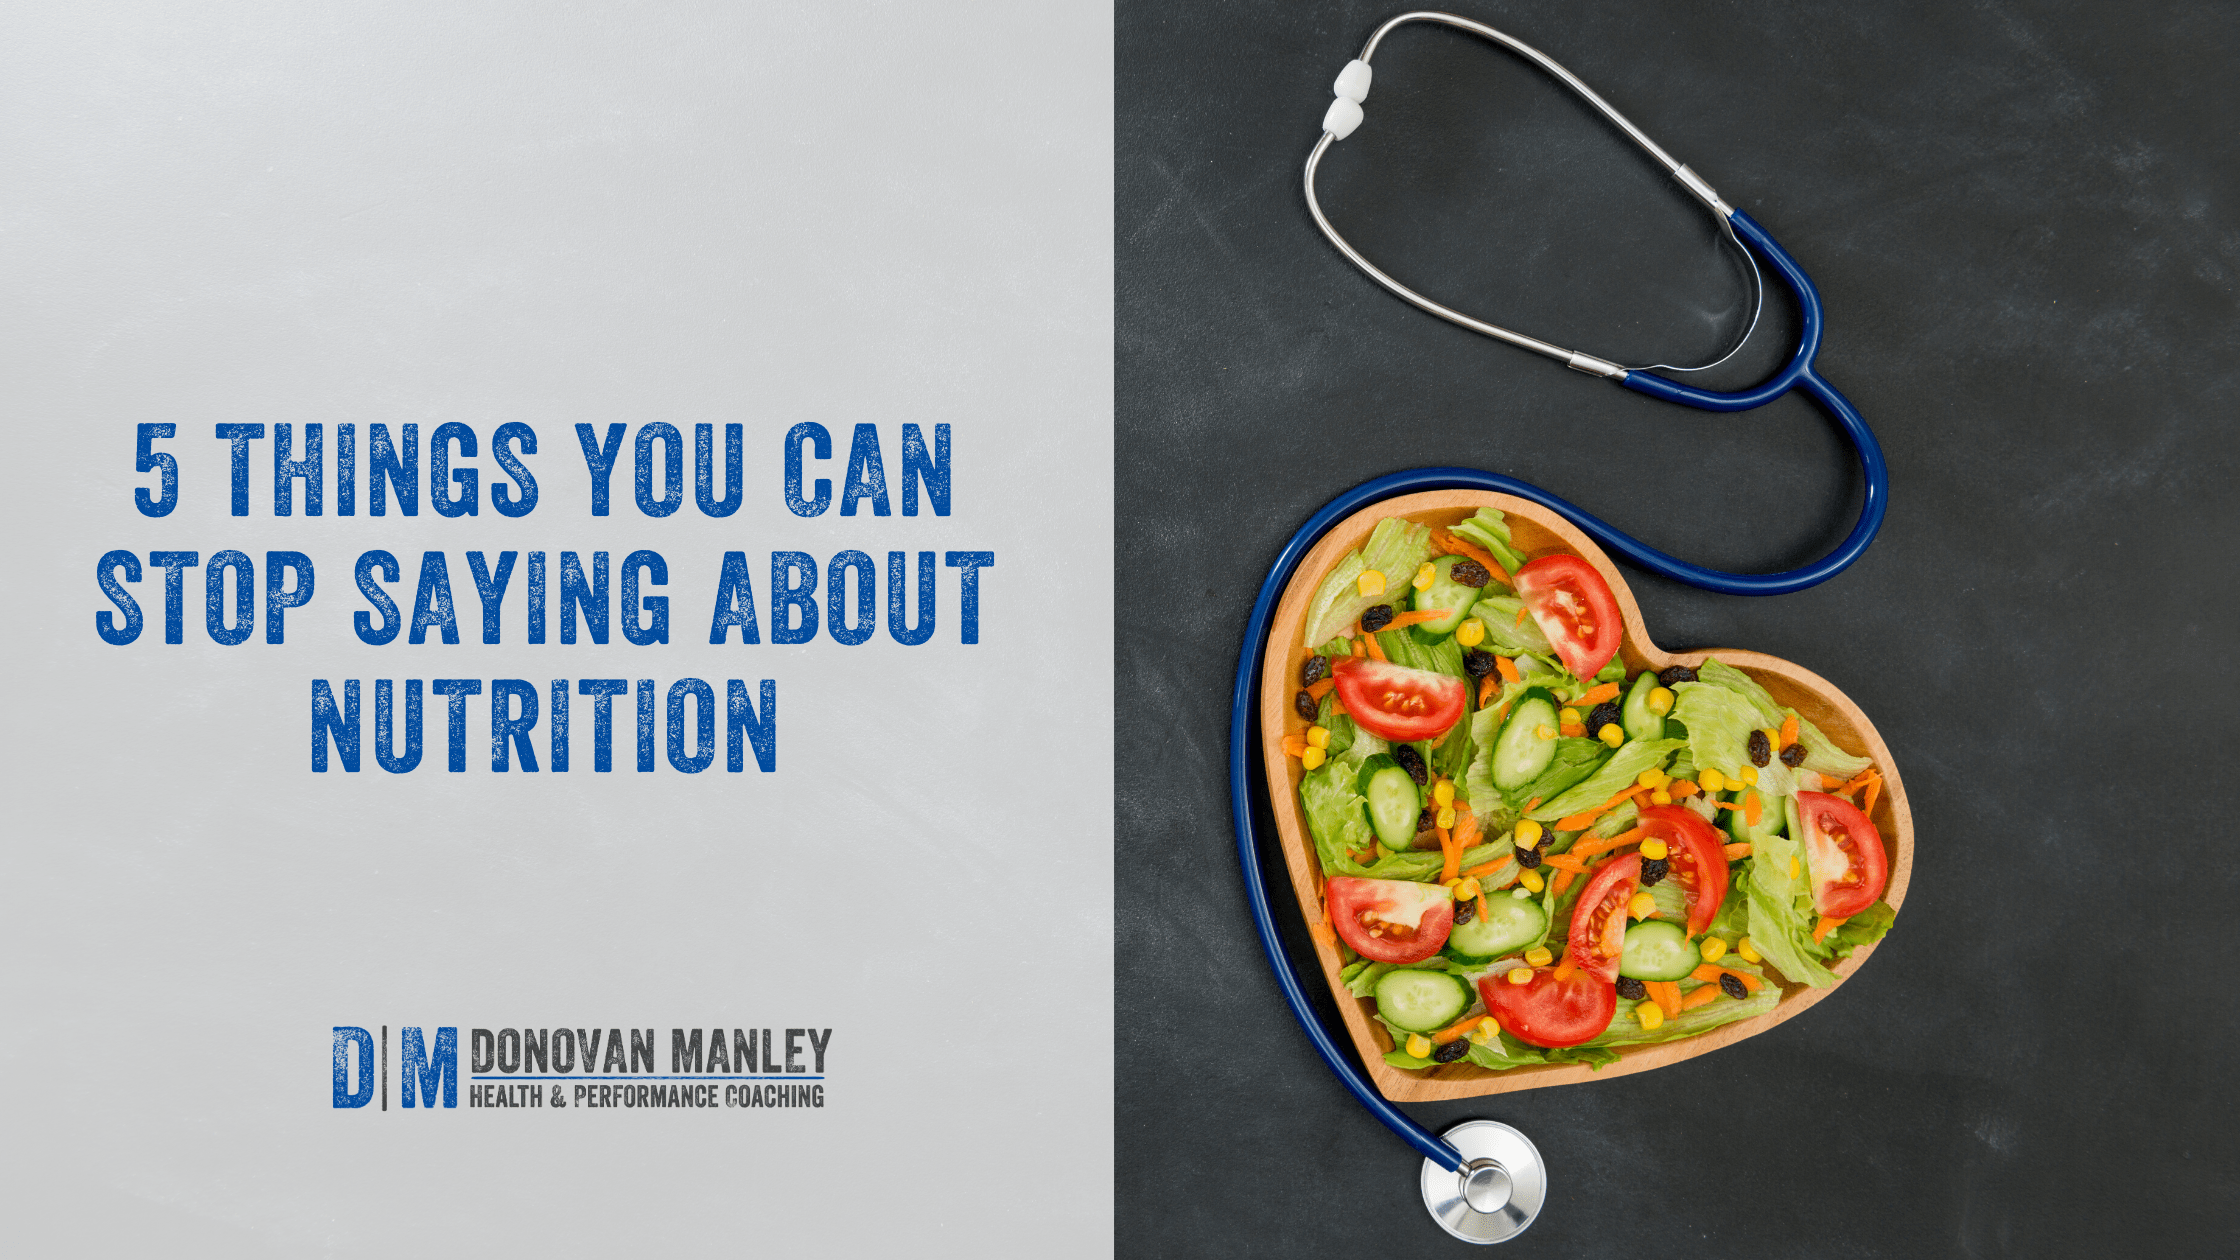 5 Things You Can Stop Saying About Nutrition Donovan Manley